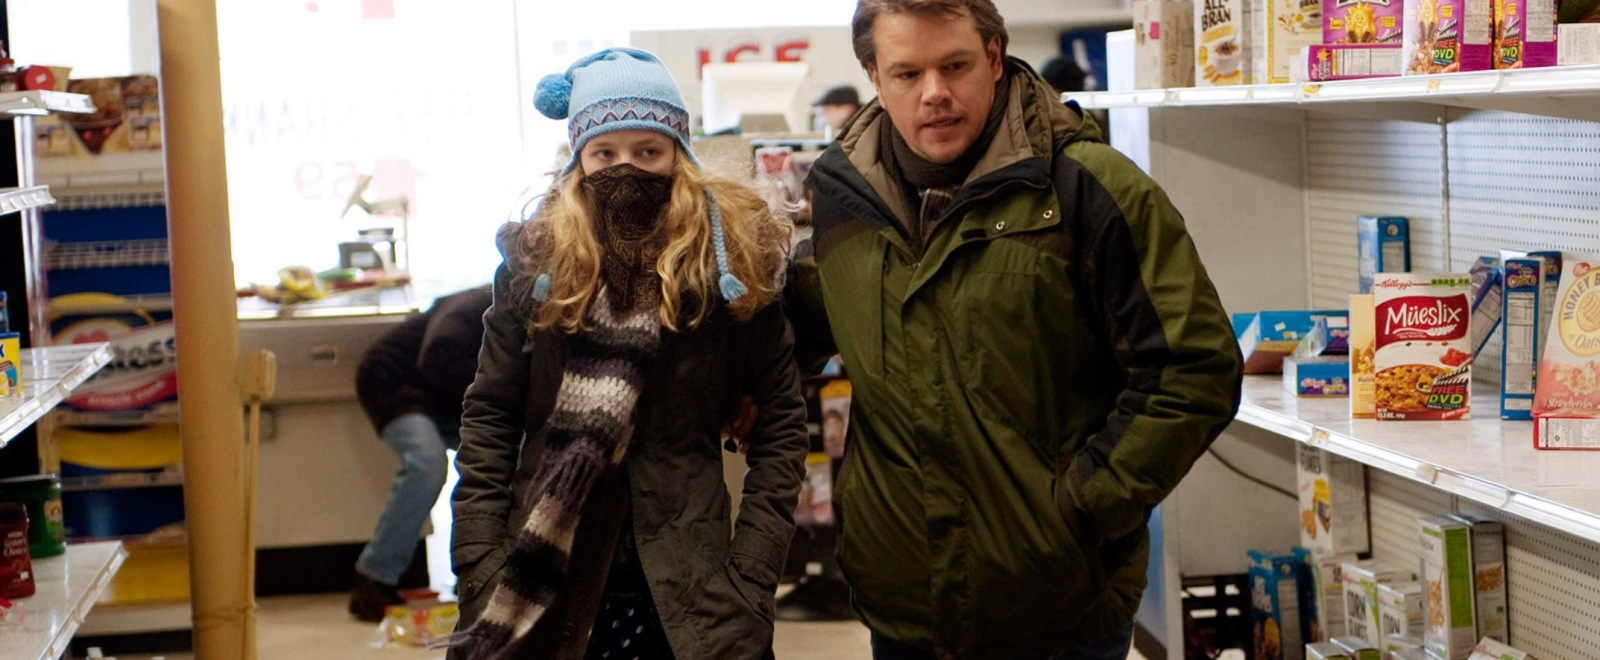 'Contagion' Star Matt Damon Believes The Movie Foretold ...